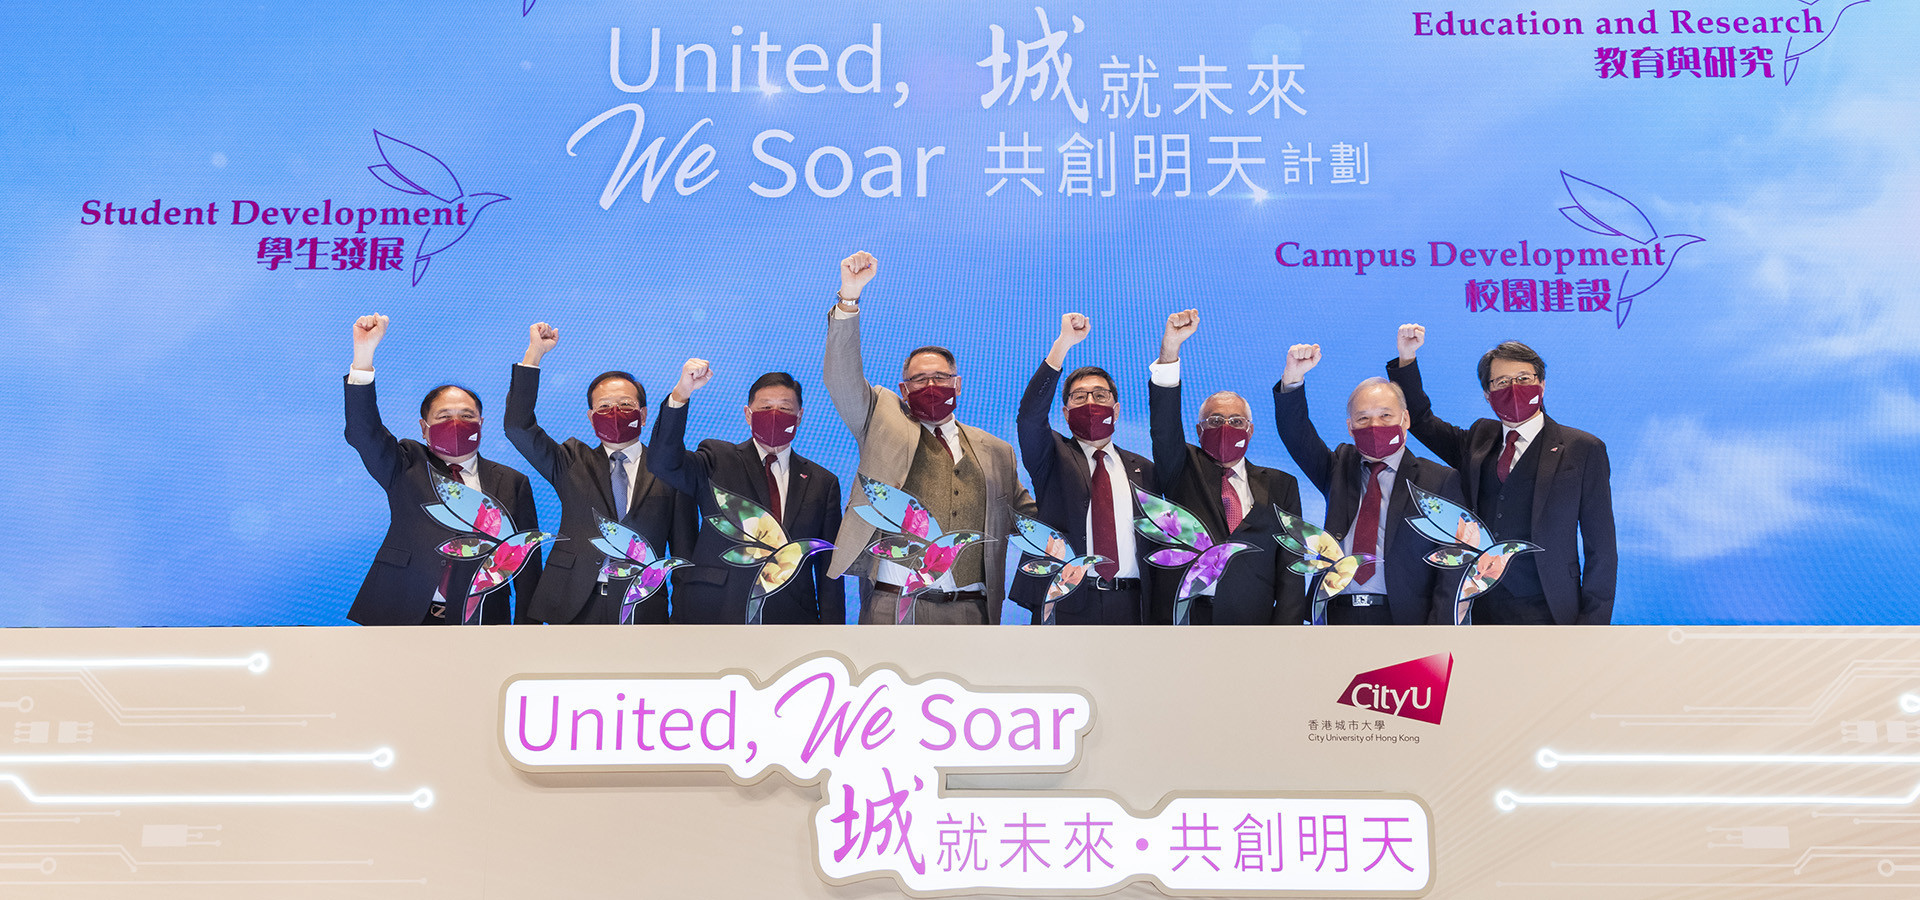 'United, We Soar' — new fundraising drive takes off